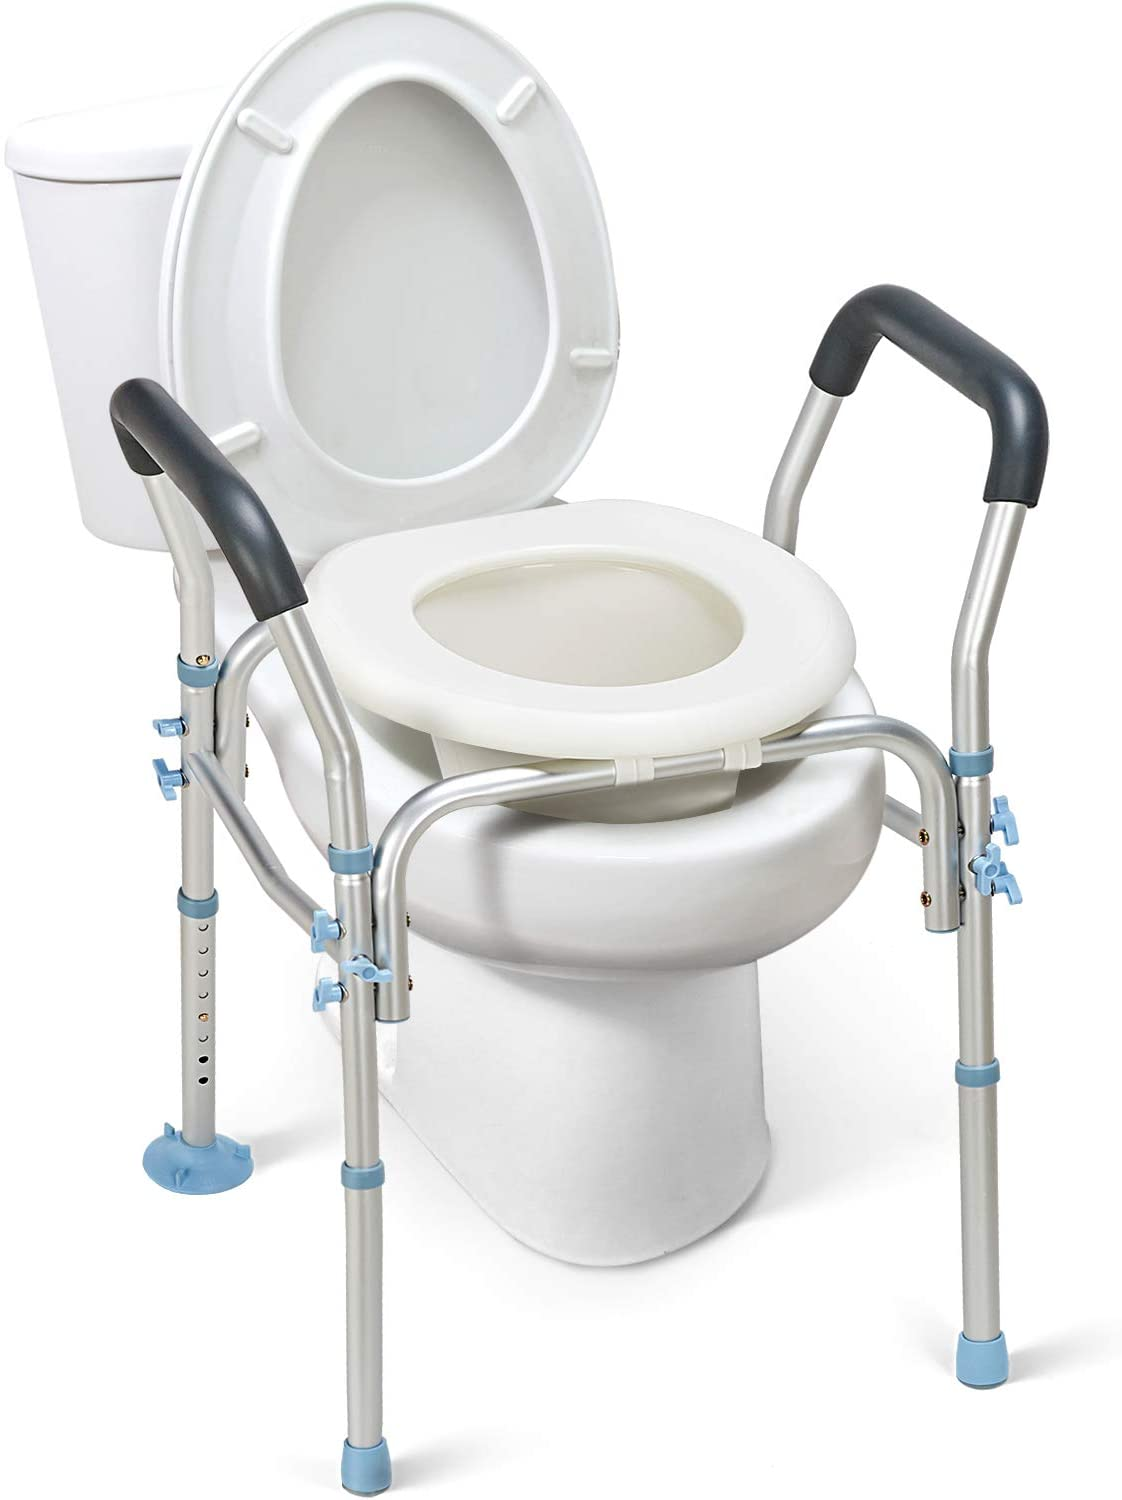 Amazon Com Oasisspace Stand Alone Raised Toilet Seat 300lbs Heavy Duty Medical Raised Homecare Commode And Safety Frame Height Adjustable Legs Bathroom Assist Frame For Elderly Handicap Disabled Health Personal Care